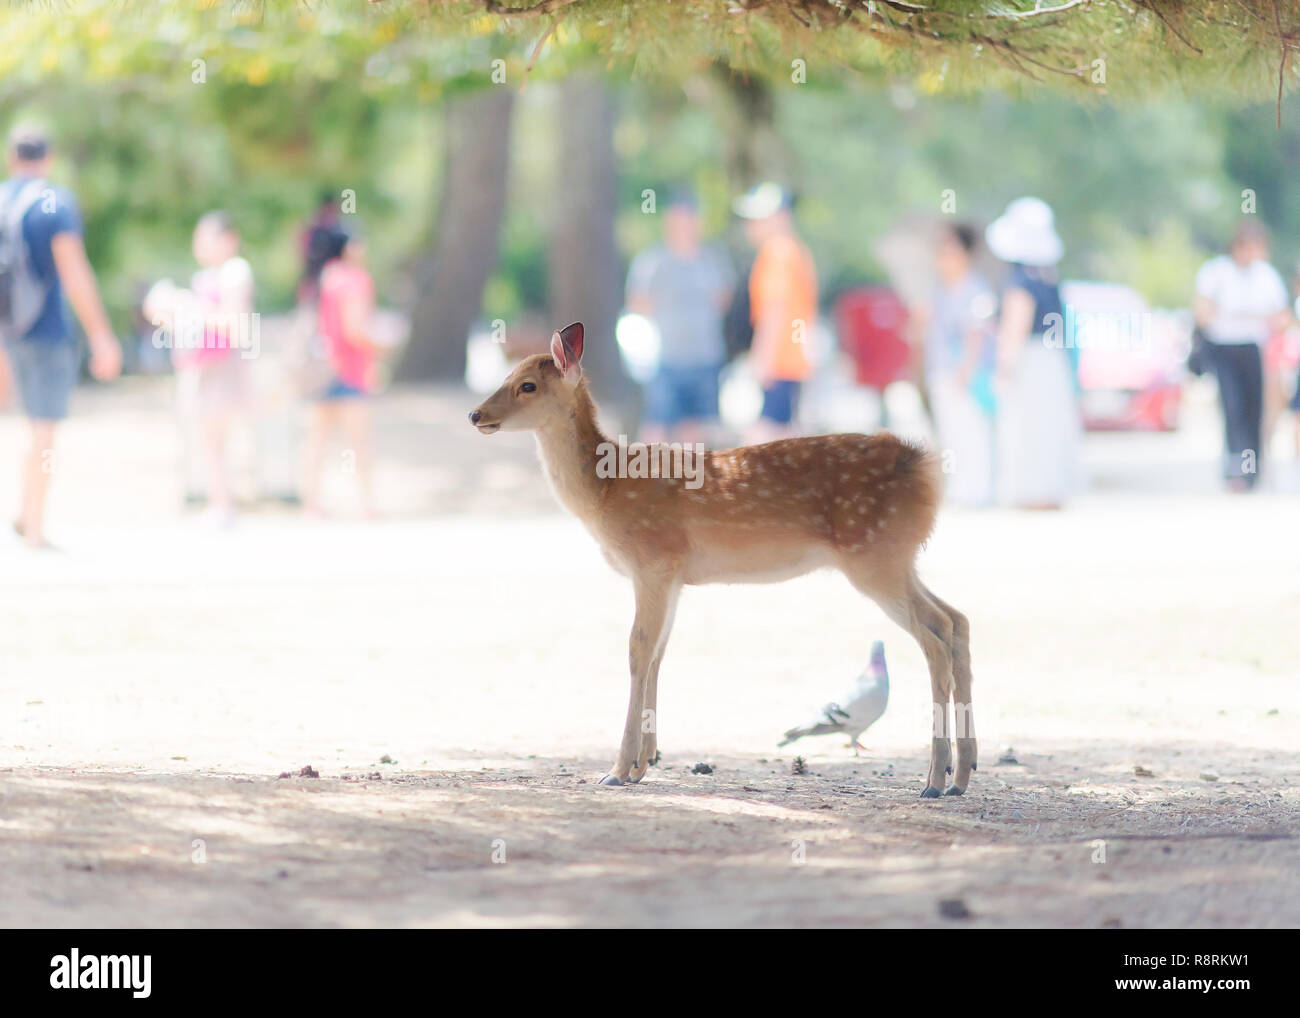 Youg cute deer in Japan in a very bright environment - Stock Image